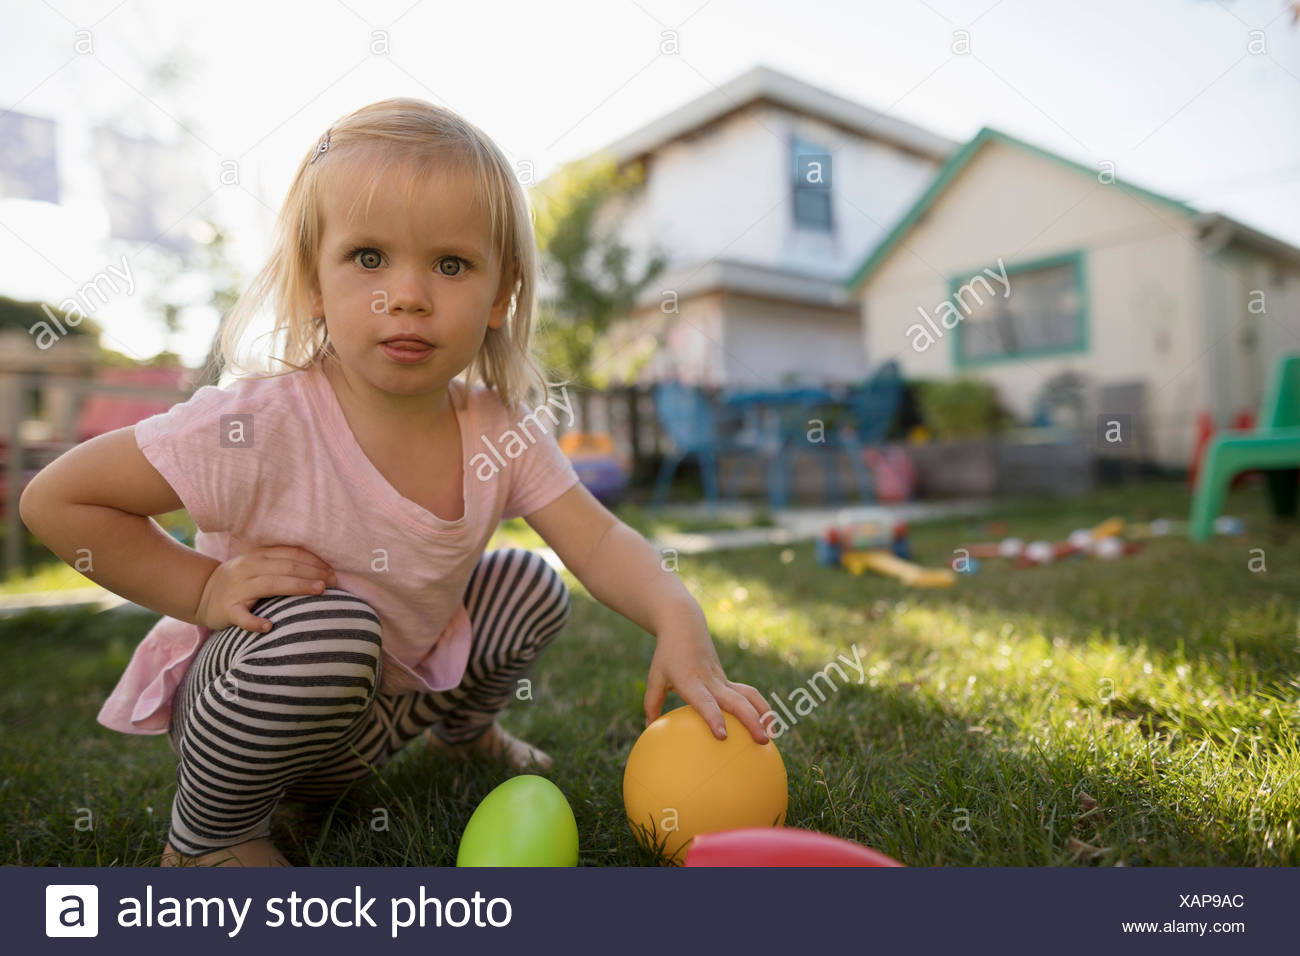 Portrait curious blonde toddler girl playing with toys in backyard - Stock Image